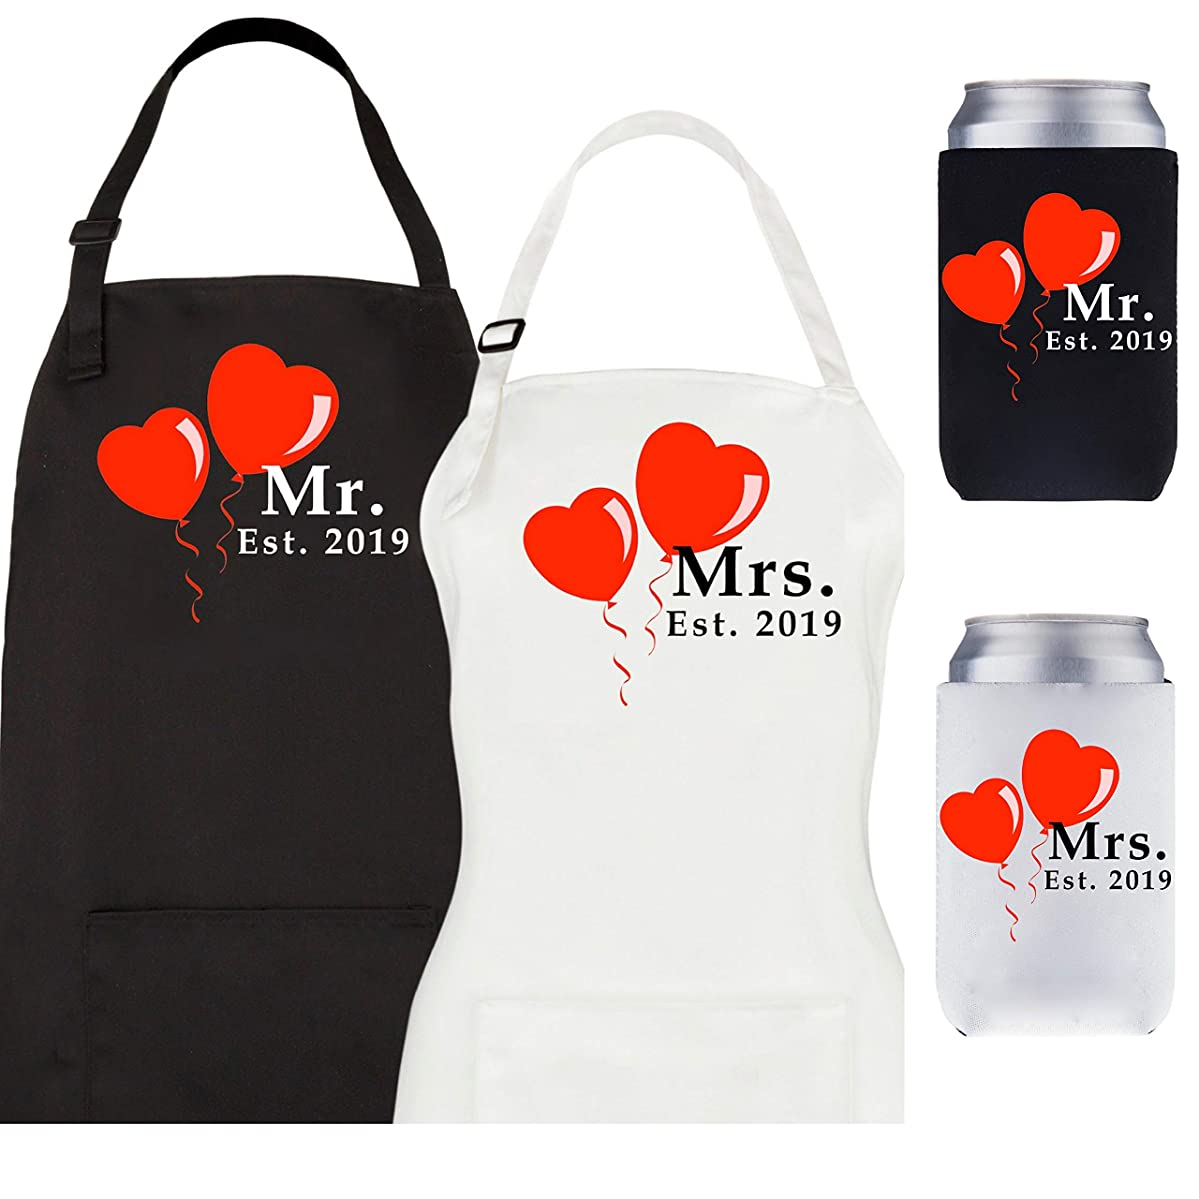 Let the Fun Begin Mr and Mrs Est. 2019 Aprons and Coolers Set, Couples Wedding Engagement Gifts, His Hers Bridal Shower Gift for Bride Groom Hubby Wifey